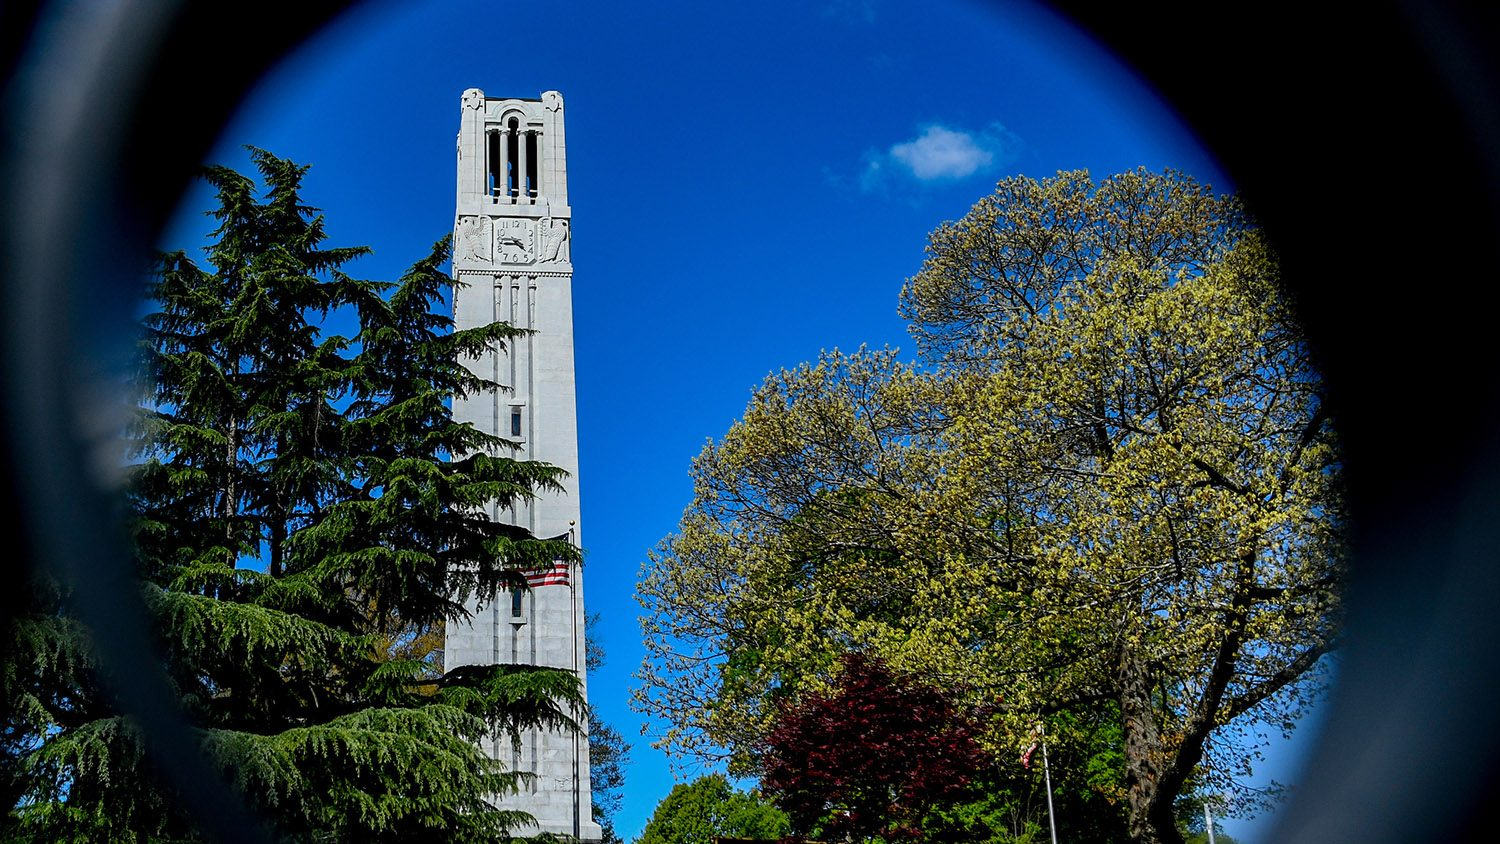 The Belltower, framed by the gate at the edge of campus.